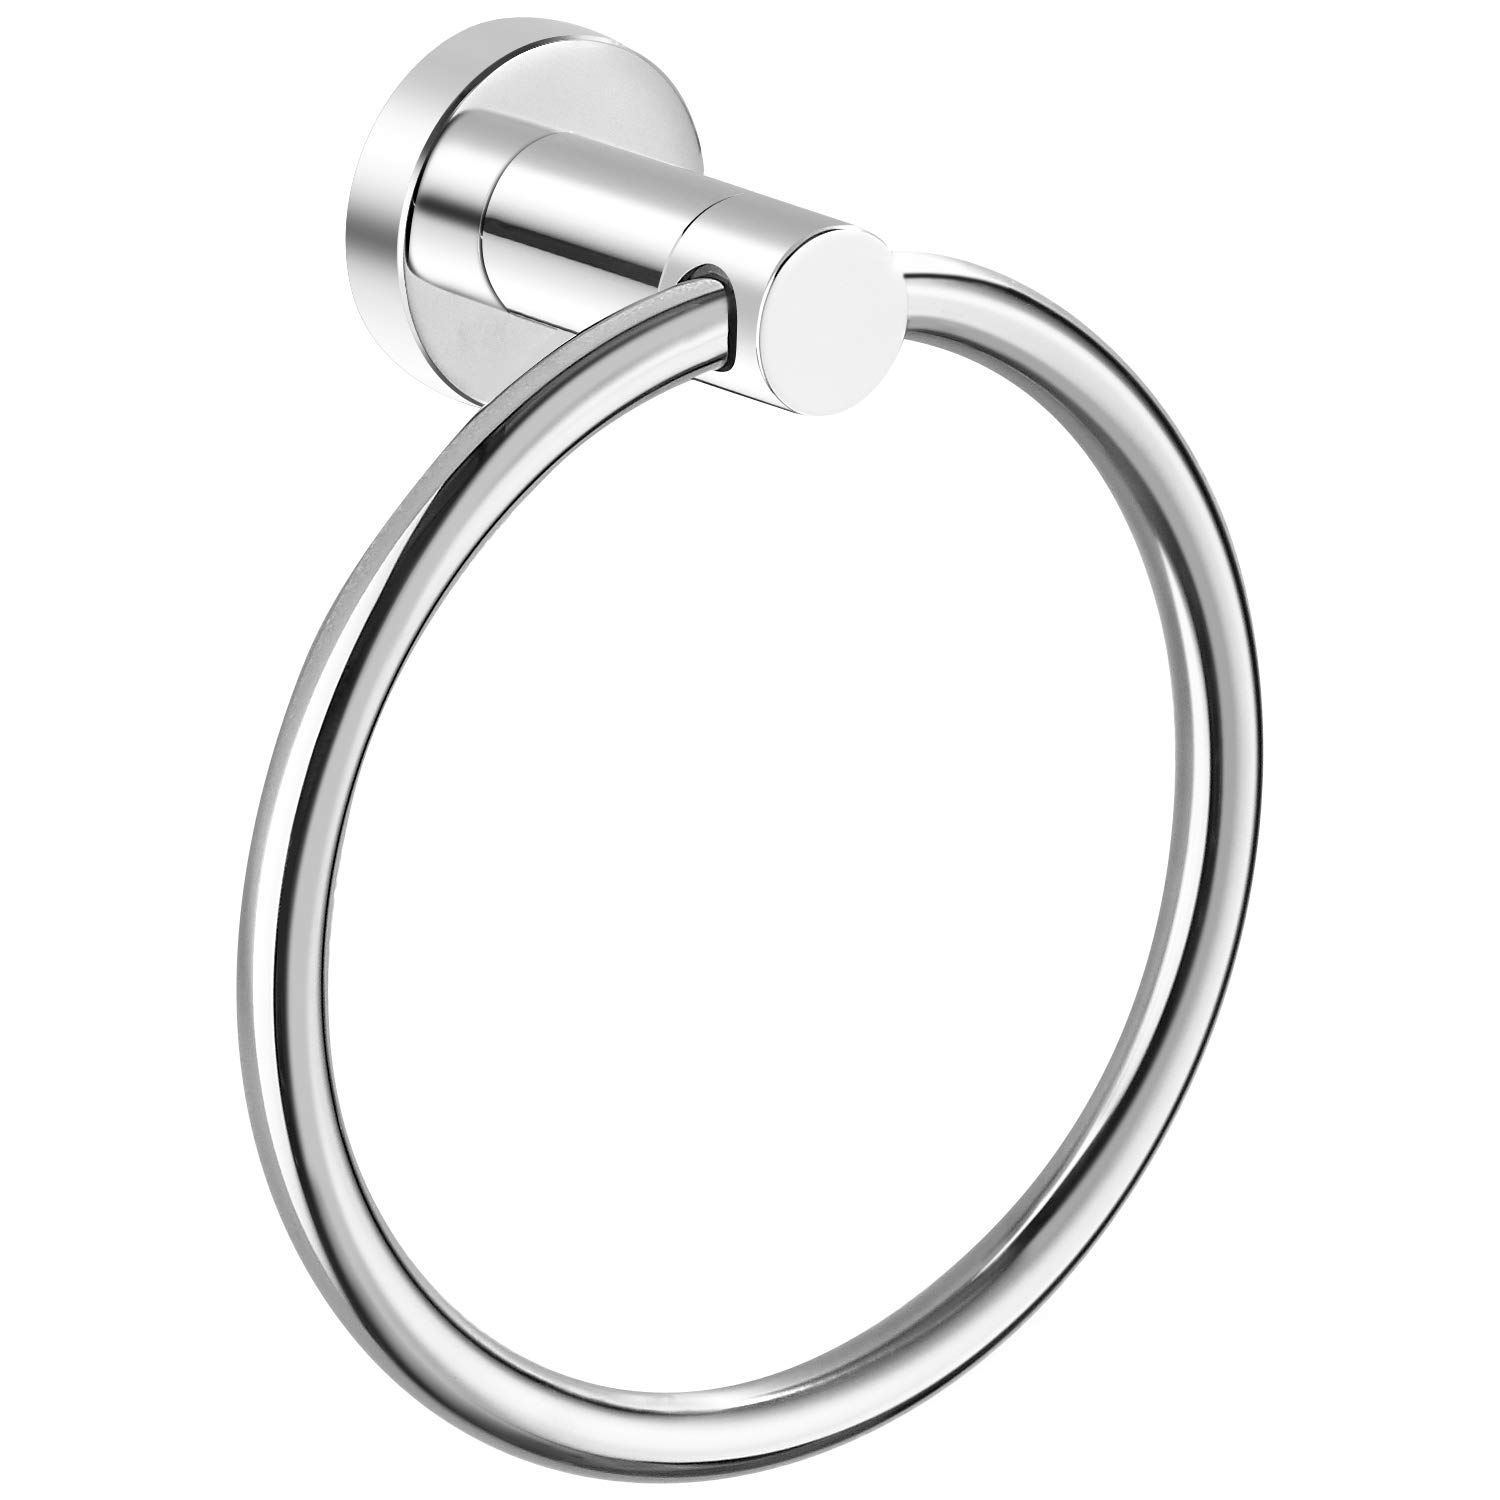 Marmolux Acc Towel Ring Bathroom Hand Towel Holder Round Towel Hanger Bath Towel Rack Circle Rings Door Hanger Organizer Bathroom Hardware Accessories Wall Mount Stainless Steel Polished Chrome by Marmolux Acc